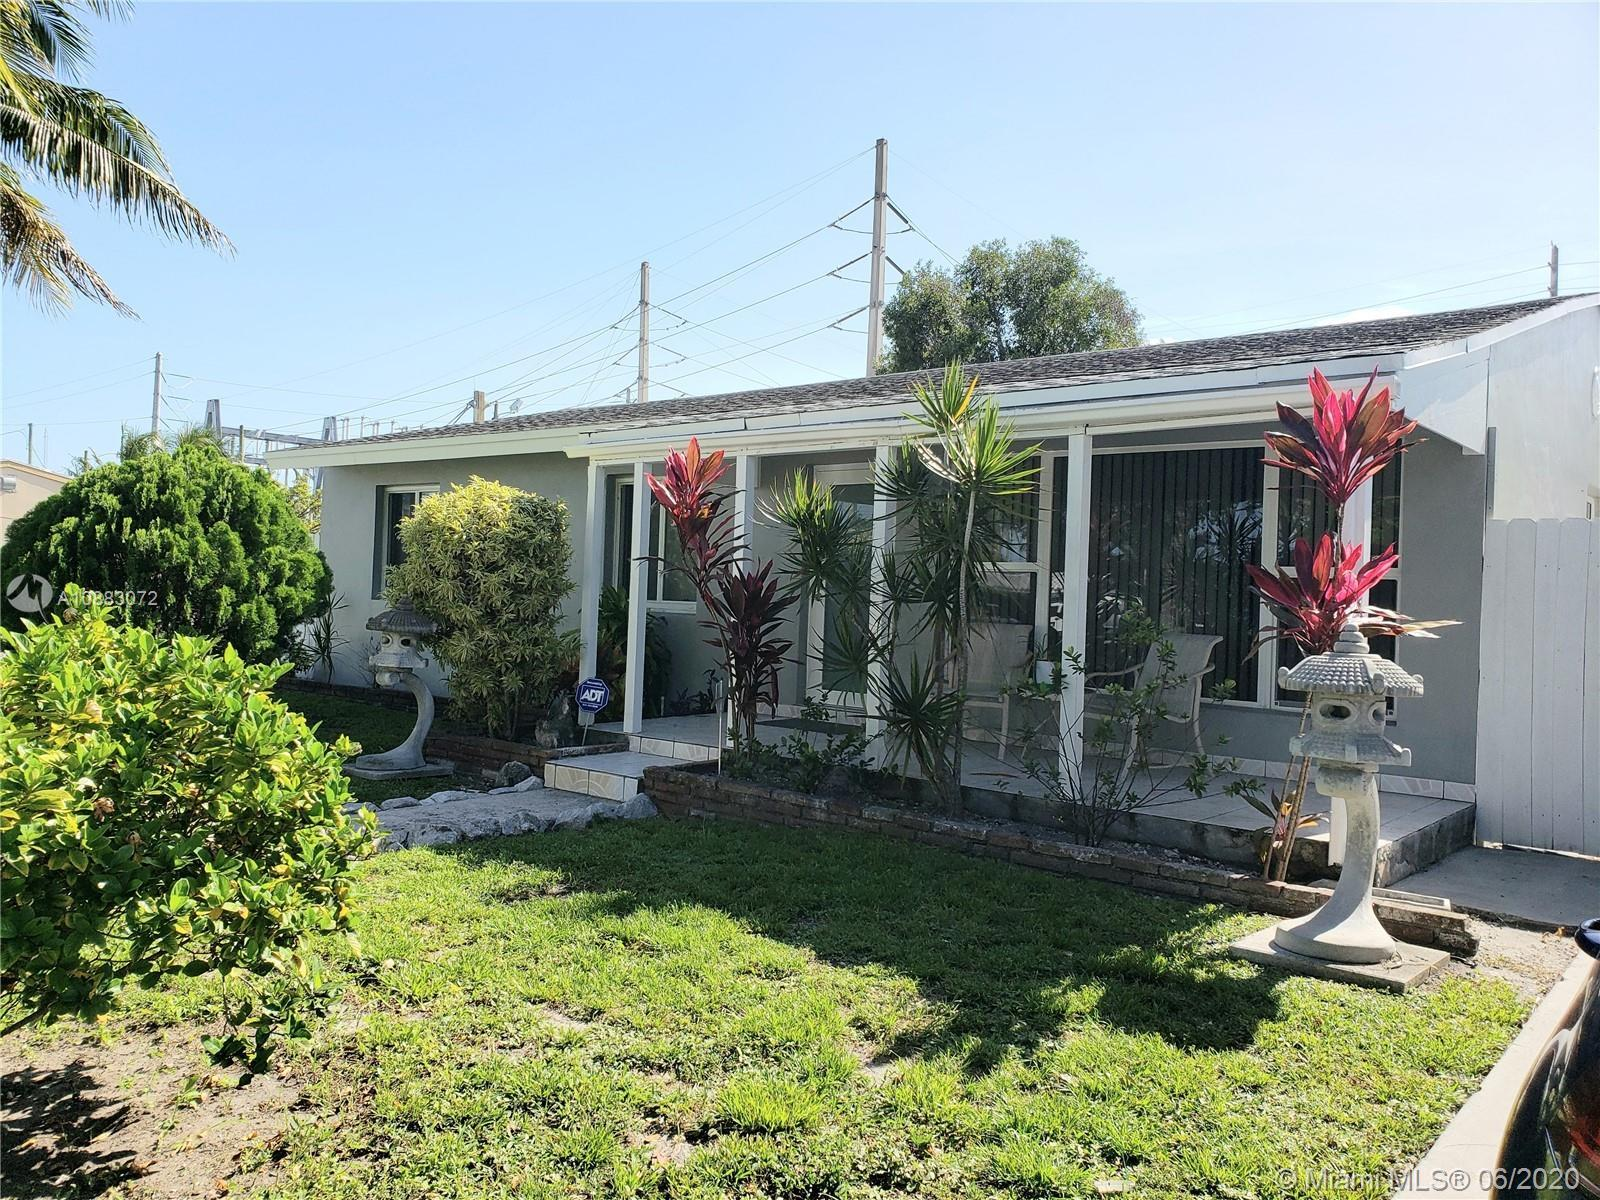 BEAUTIFUL CORNER 3 BEDROOM, 2 BATH PLUS DEN HOME IN POPULAR AREA OF HOLLYWOOD. YOUR NEW HOME HAS BEE